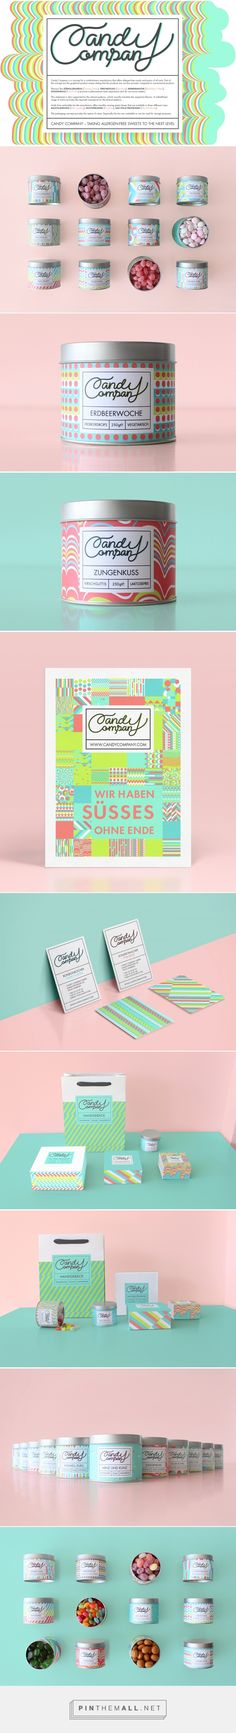 Candy Company Branding and Packaging by Sarah Dornieden                                                                                                                                                                                 More